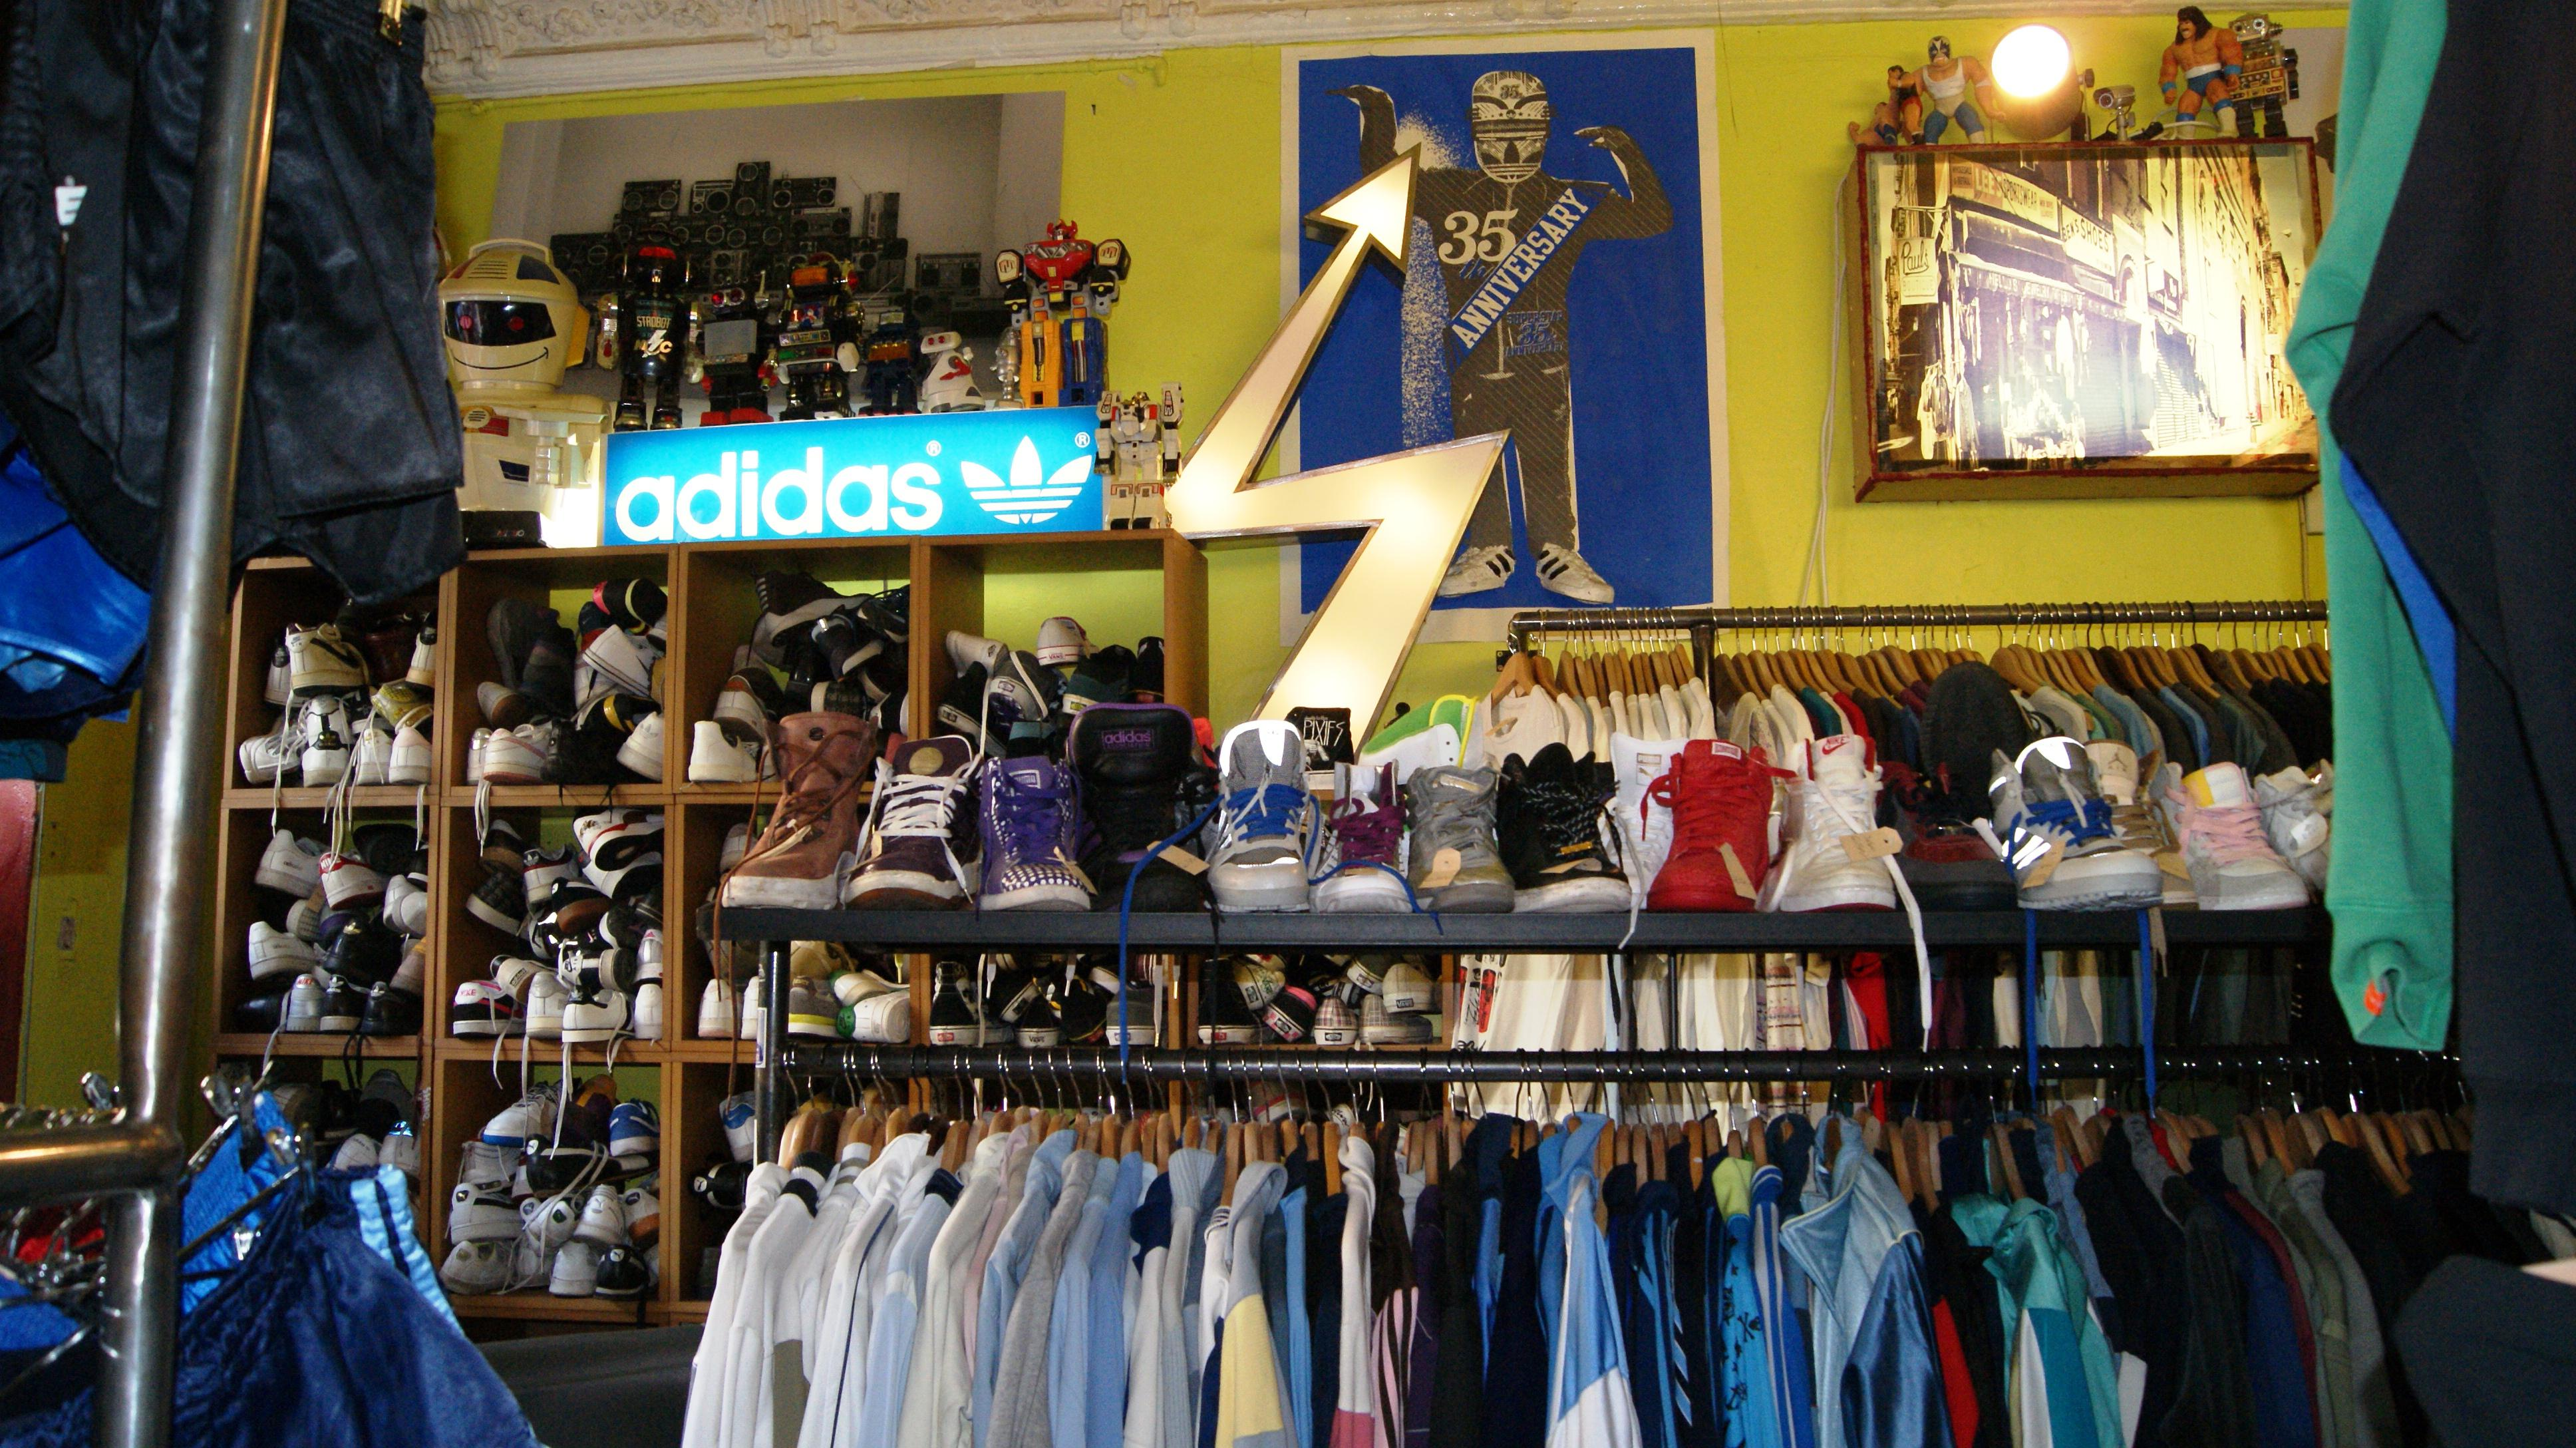 Top10 Liste Second Hand Shops Top10berlin